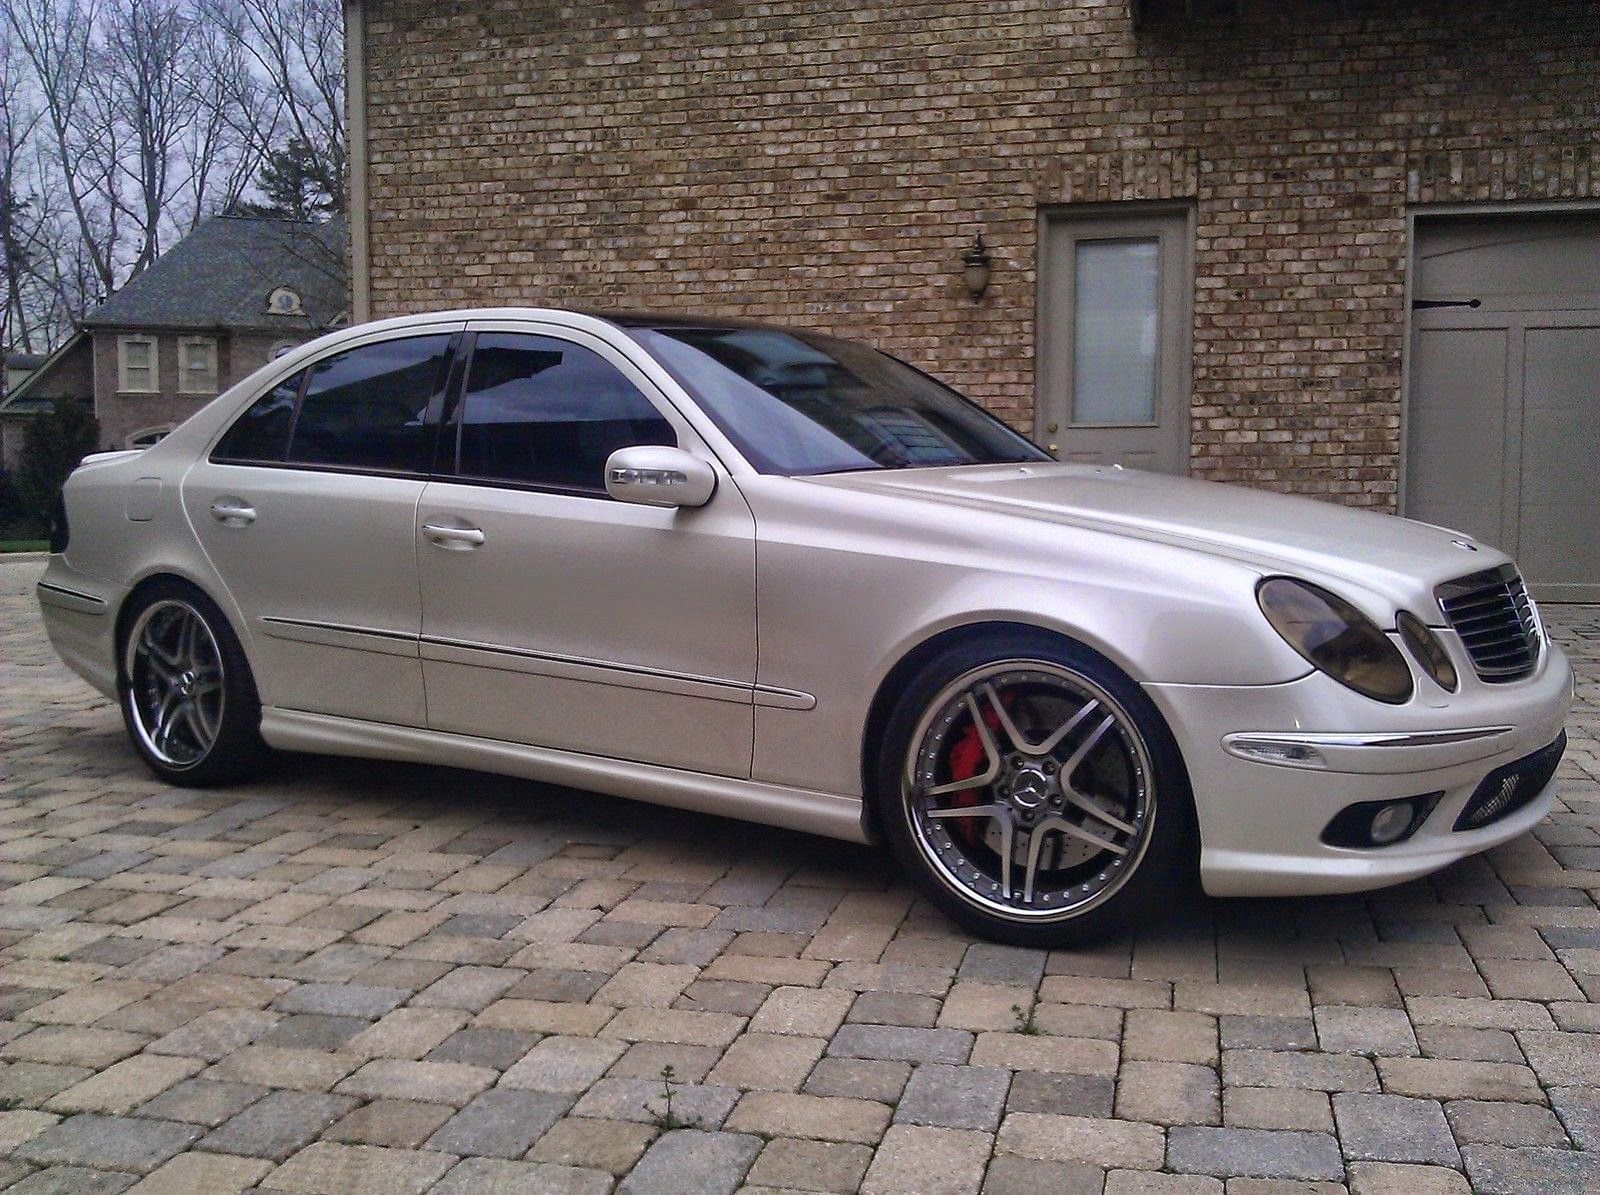 mercedes benz w211 e55 amg on autobahn wheels mercedes. Black Bedroom Furniture Sets. Home Design Ideas